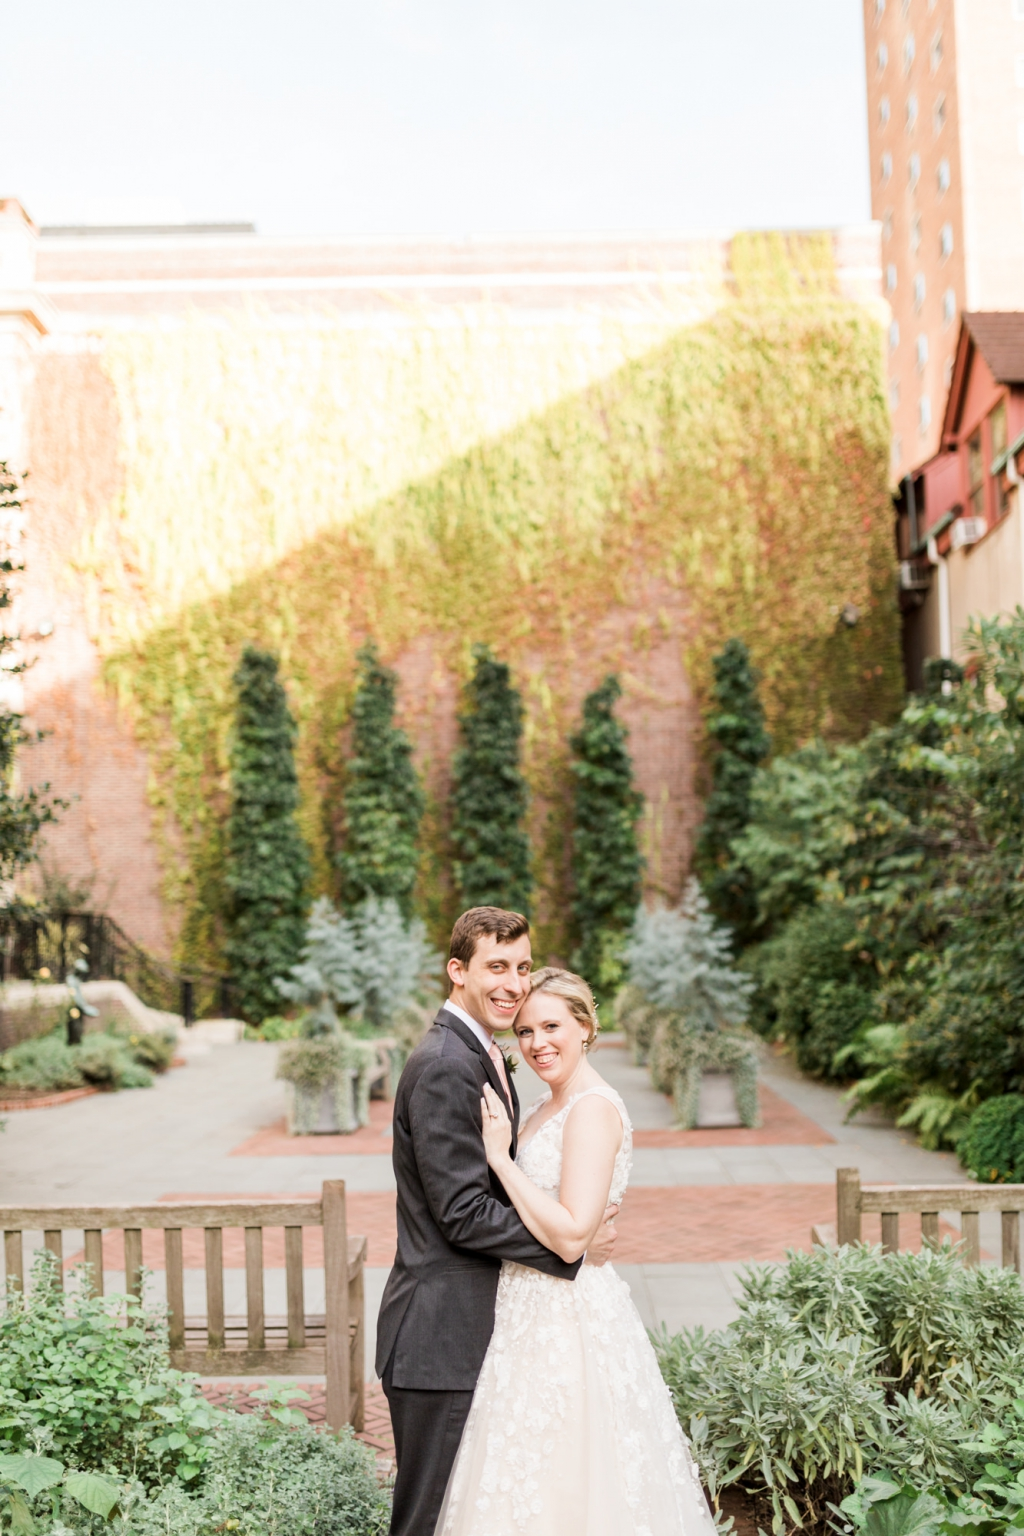 haley-richter-photography-autumn-college-of-physicians-wedding-philadelphia--123